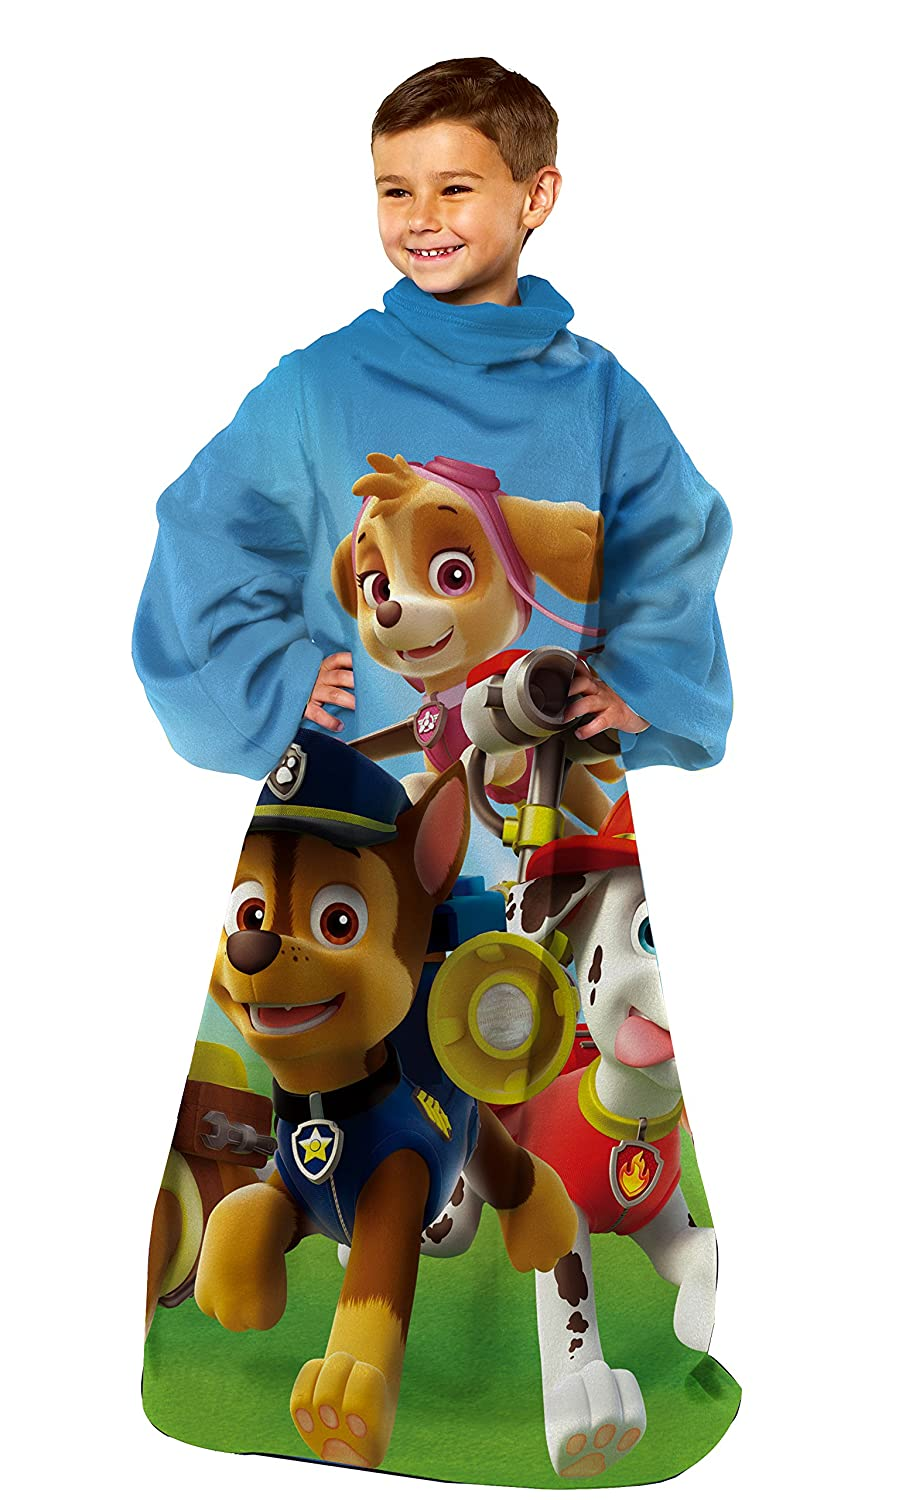 Nickelodeon Paw Patrol, Race to The Rescue Youth Comfy Throw Blanket with Sleeves, 48